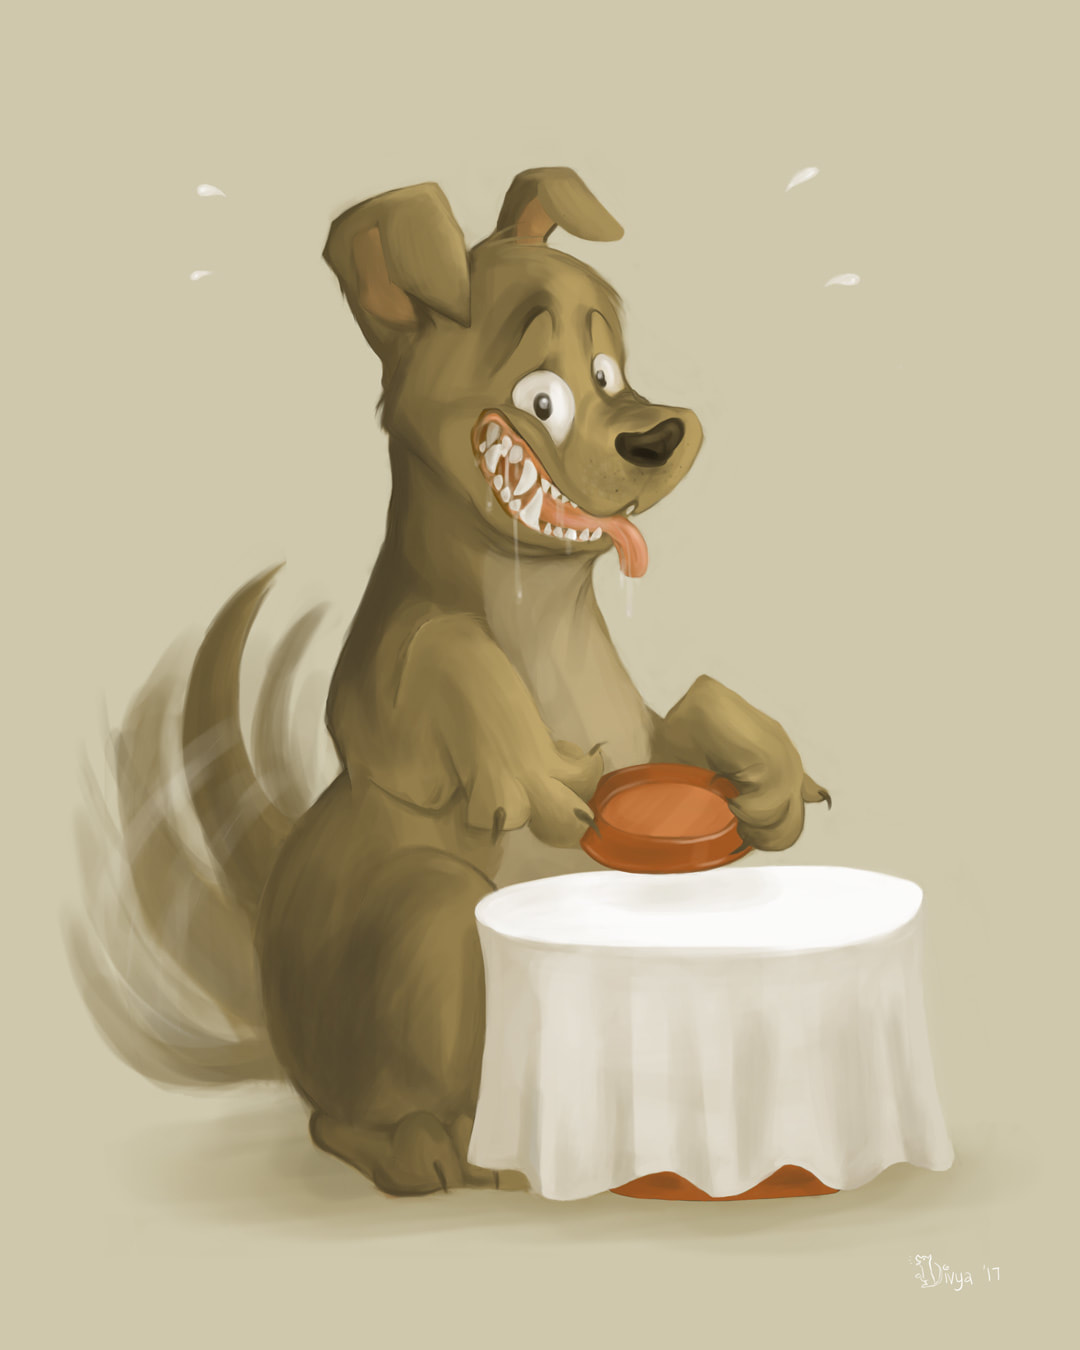 A Dog holding out its bowl salivating in a Pavlovian Response to meal time. Digital illustration by Divya George.